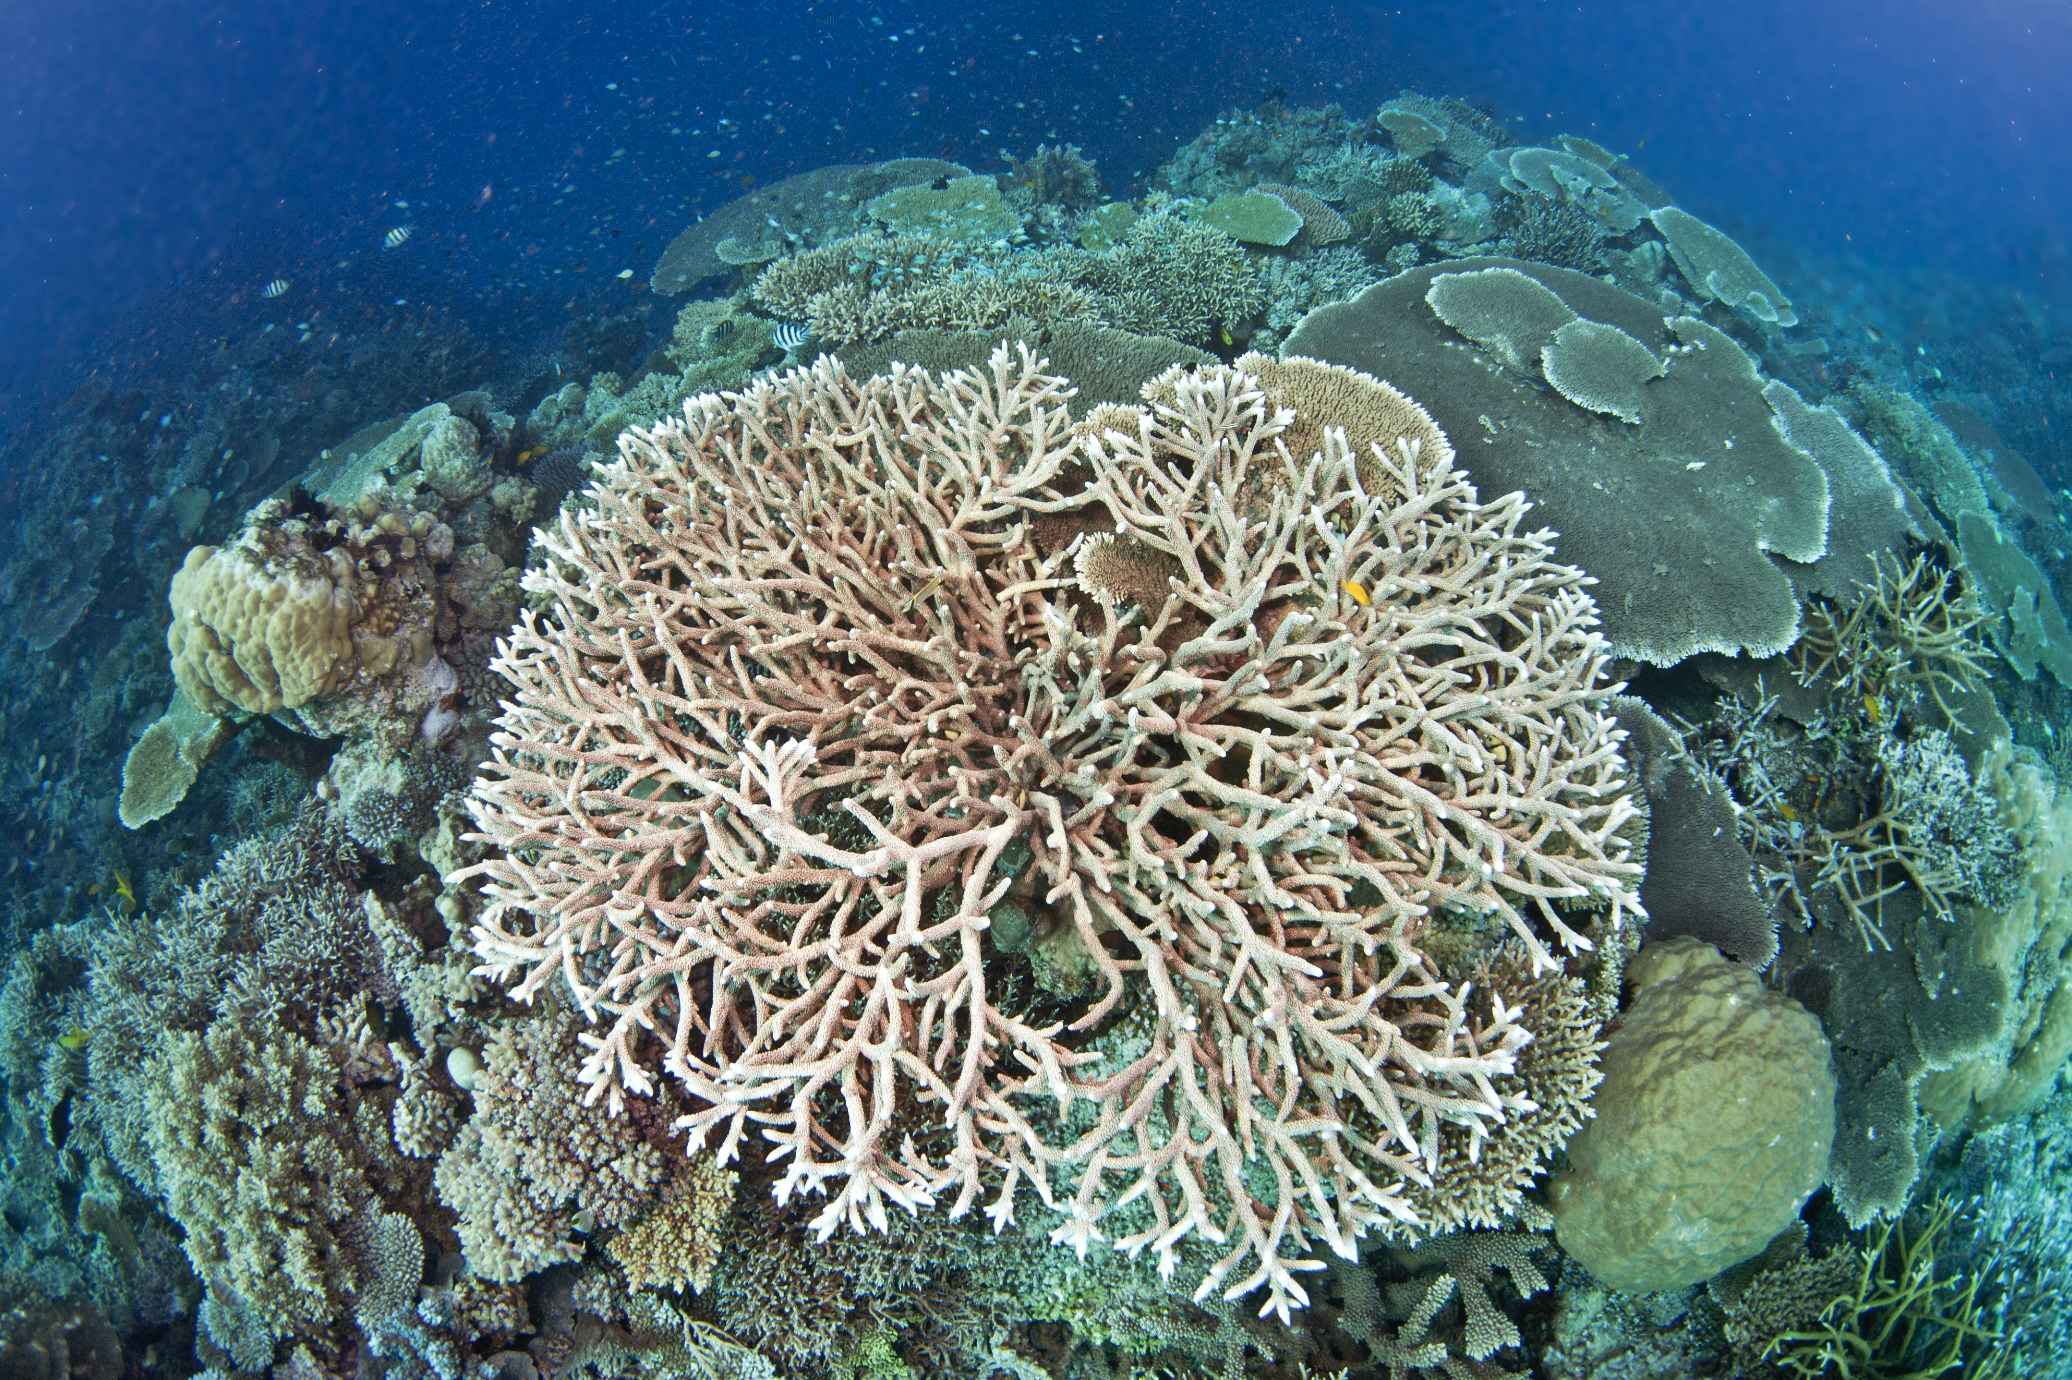 coral in the Great barrier reef credit: jayne jenkins / coral reef image bank